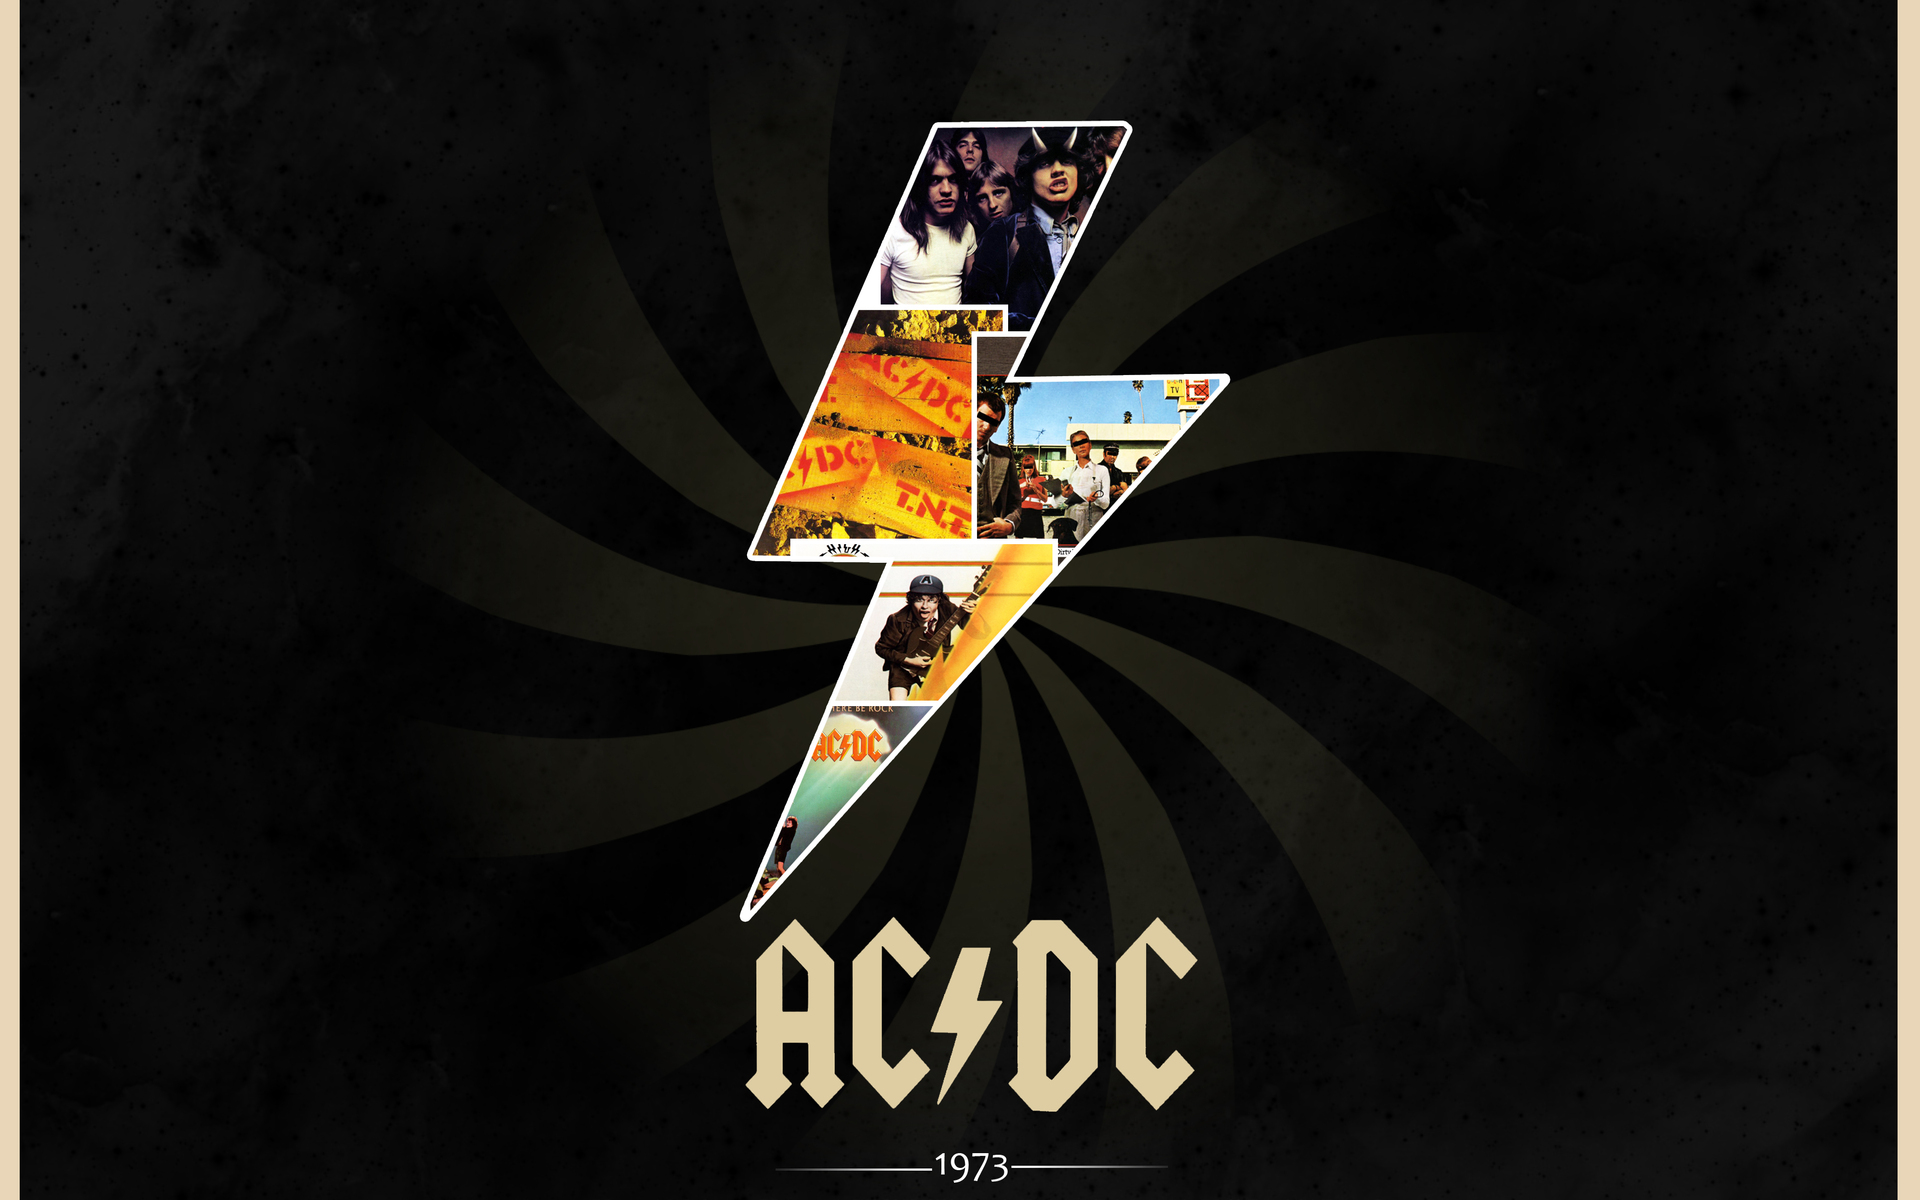 Acdc wallpaper wallpapersafari - Ac dc wallpaper for android ...